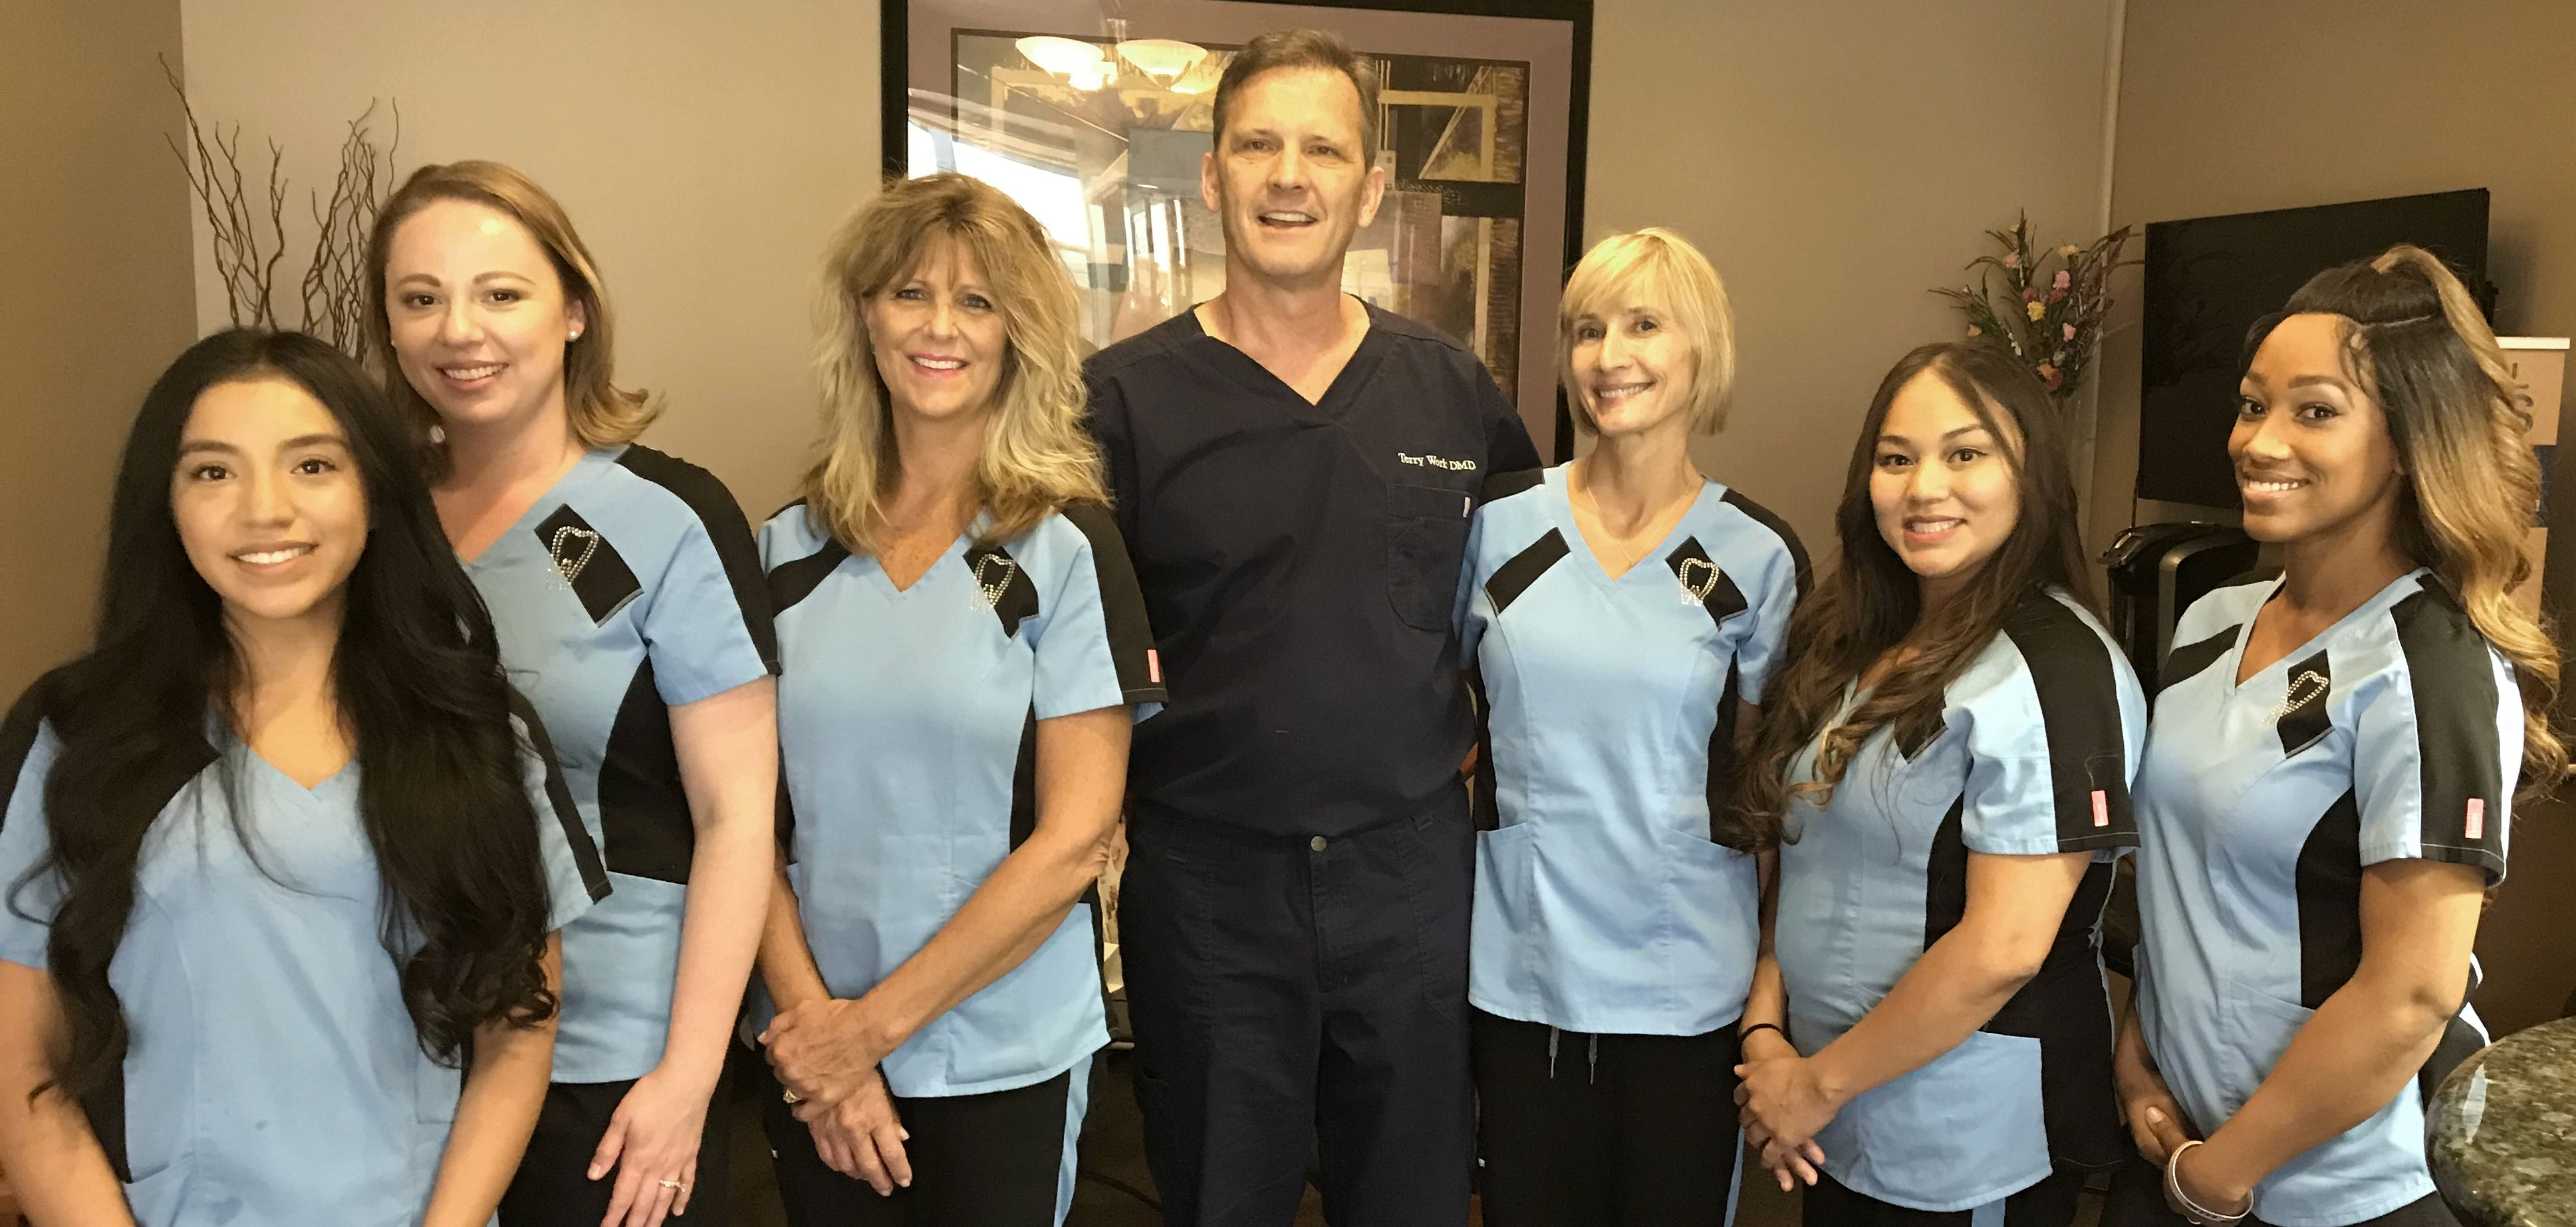 Dental Staff - Dental Works in Scottsdale, AZ